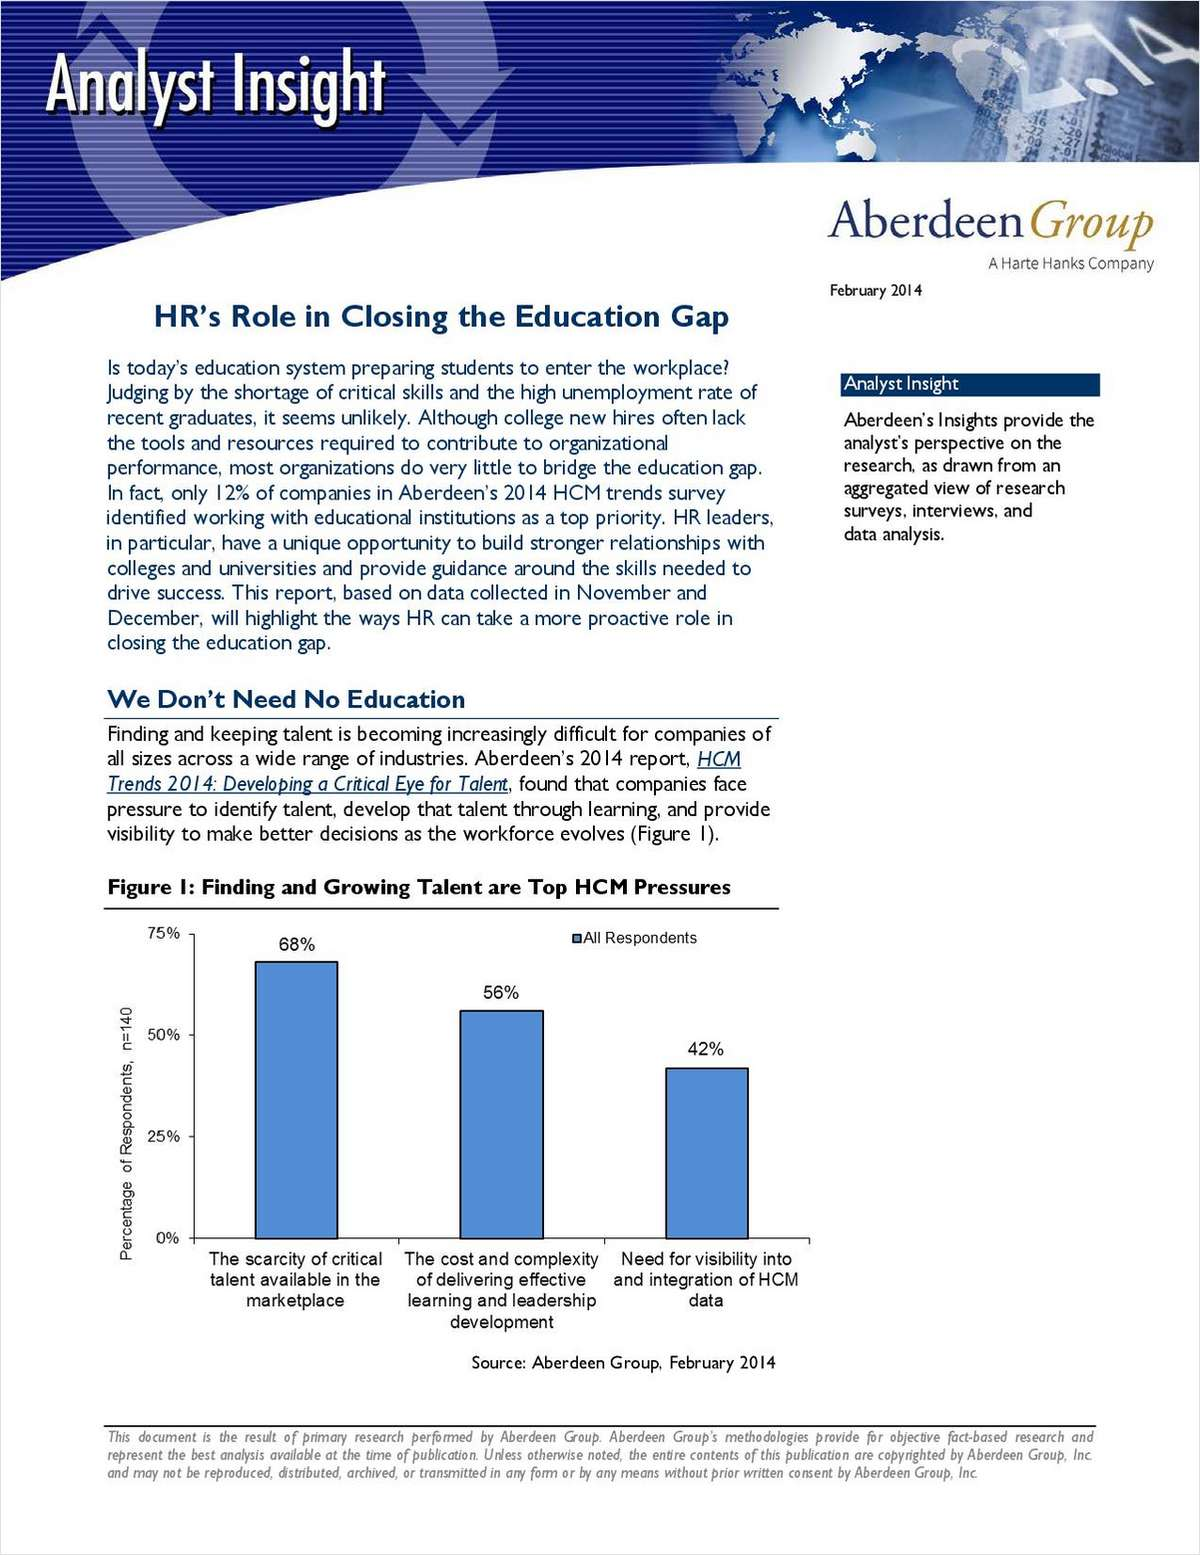 HR's Role in Closing the Education Gap